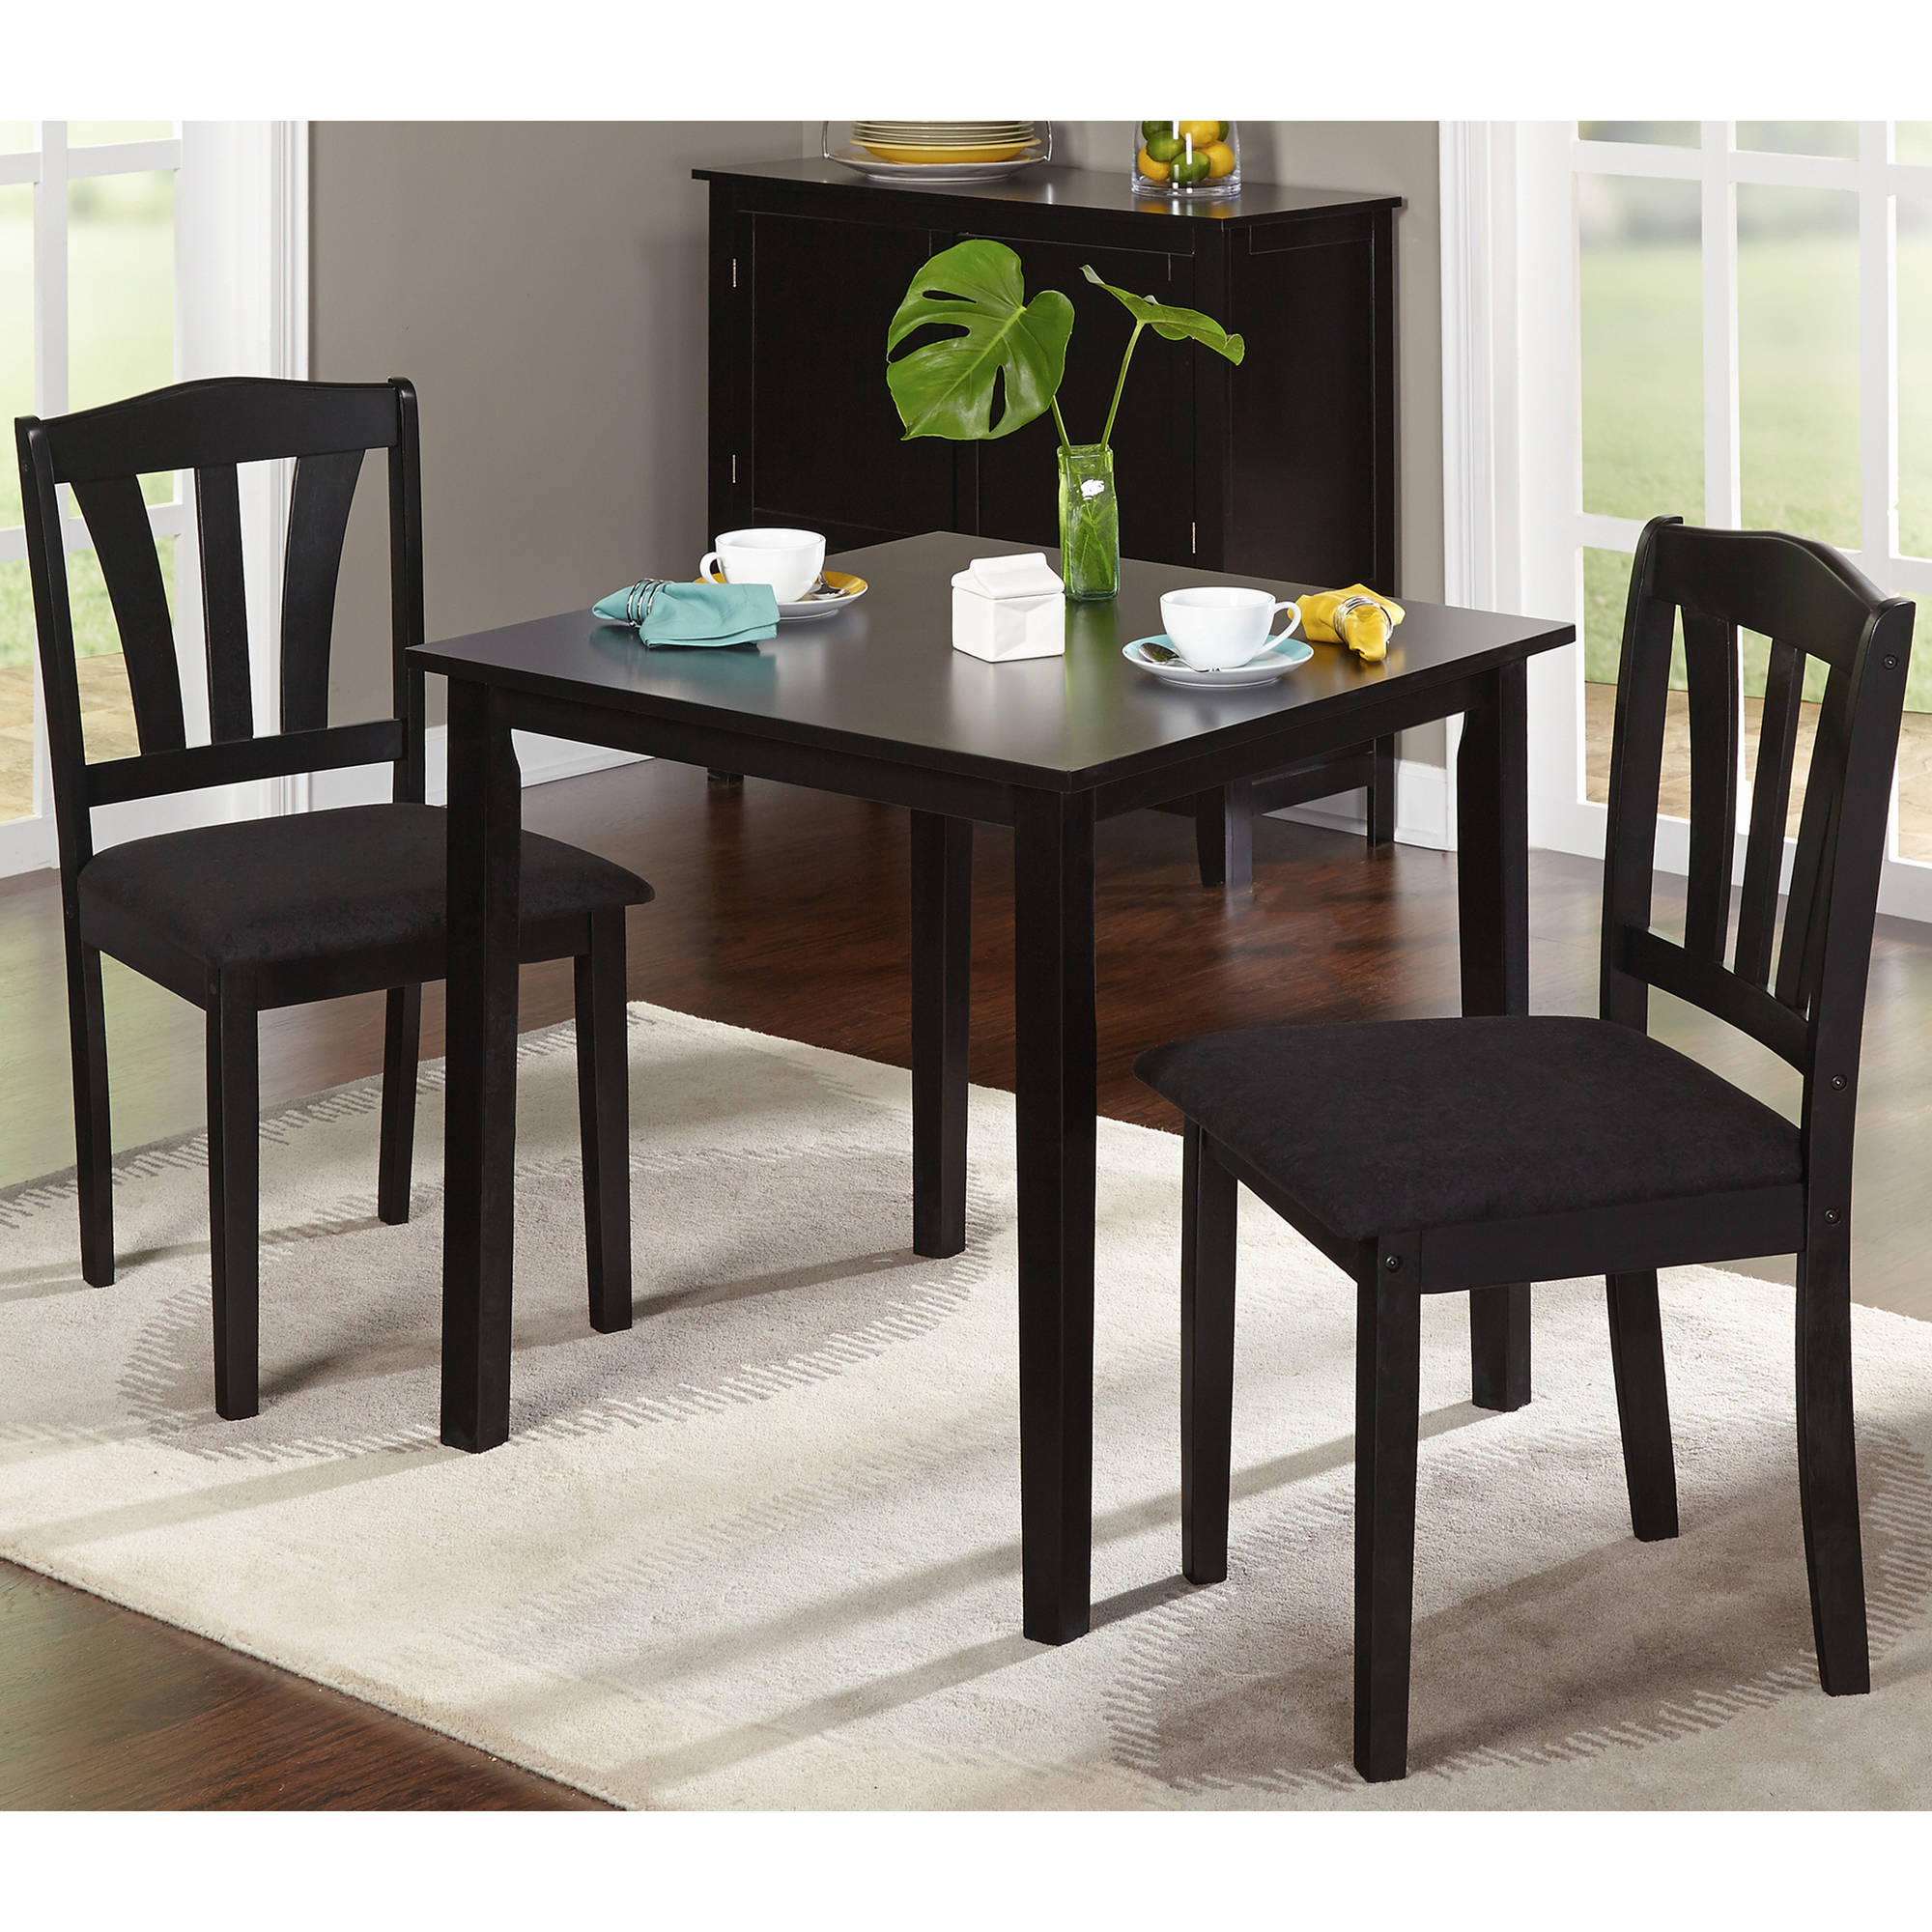 Table With 2 Chairs Target Marketing Systems Tiffany 3 Piece Dining Table Set